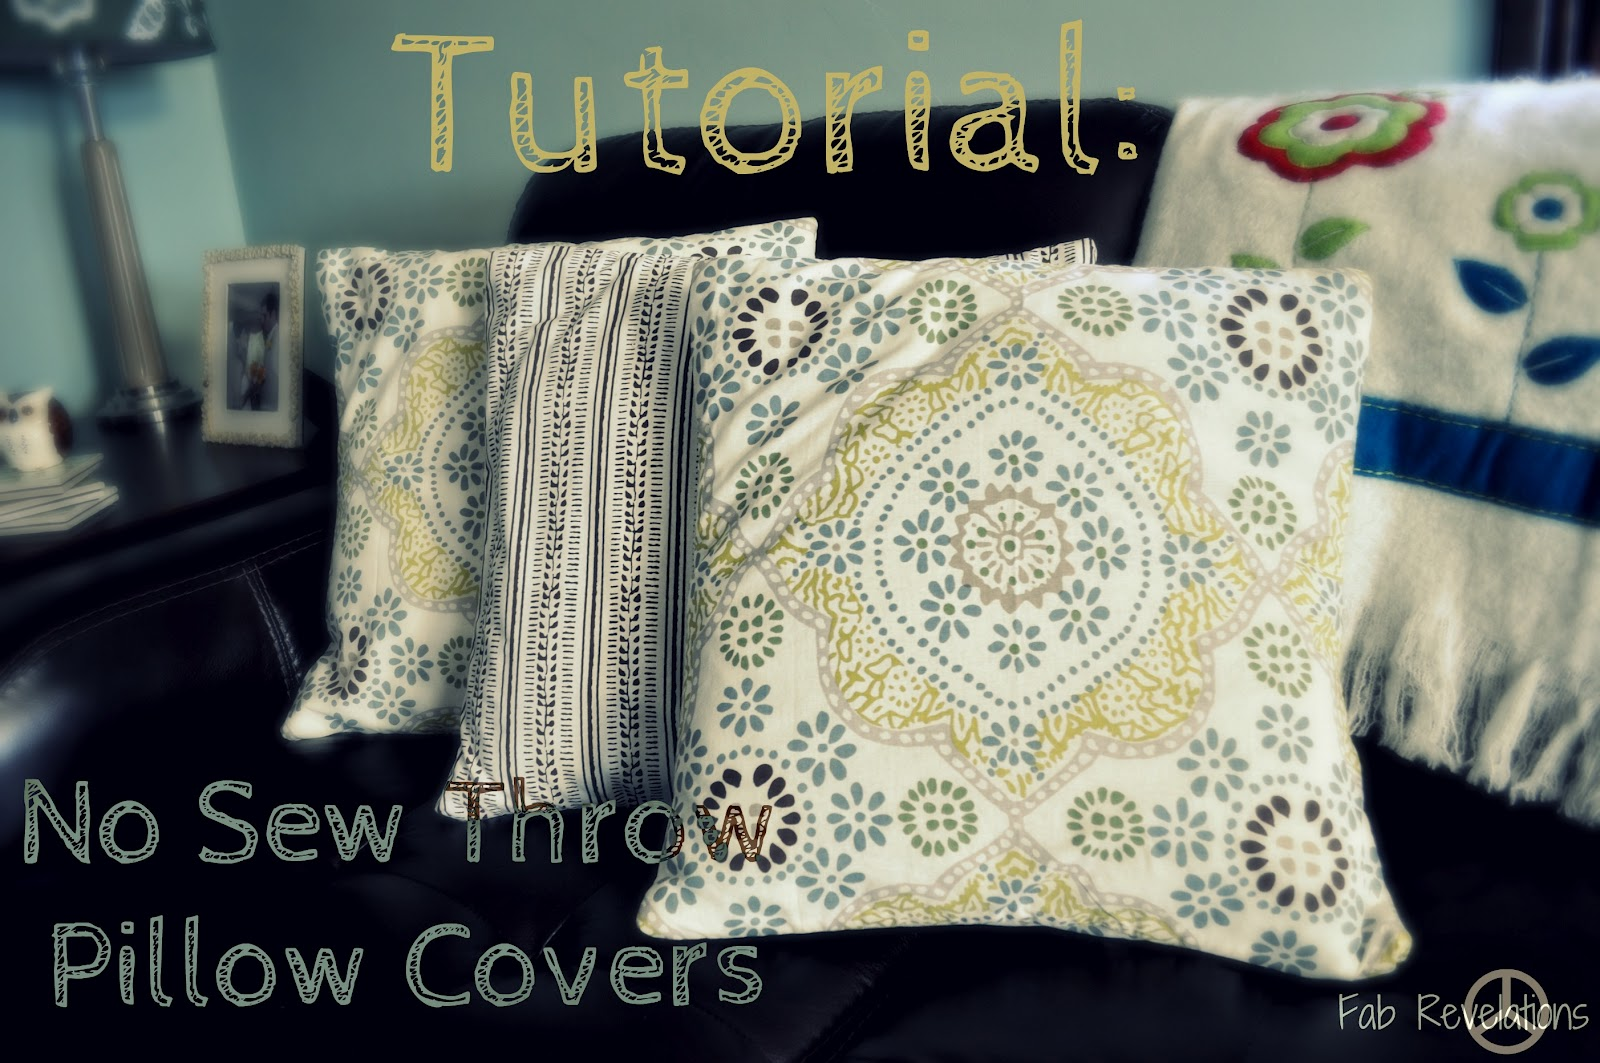 How To Make A Round Throw Pillow Cover : terry's go round: No Sew Throw Pillow Covers Tutorial